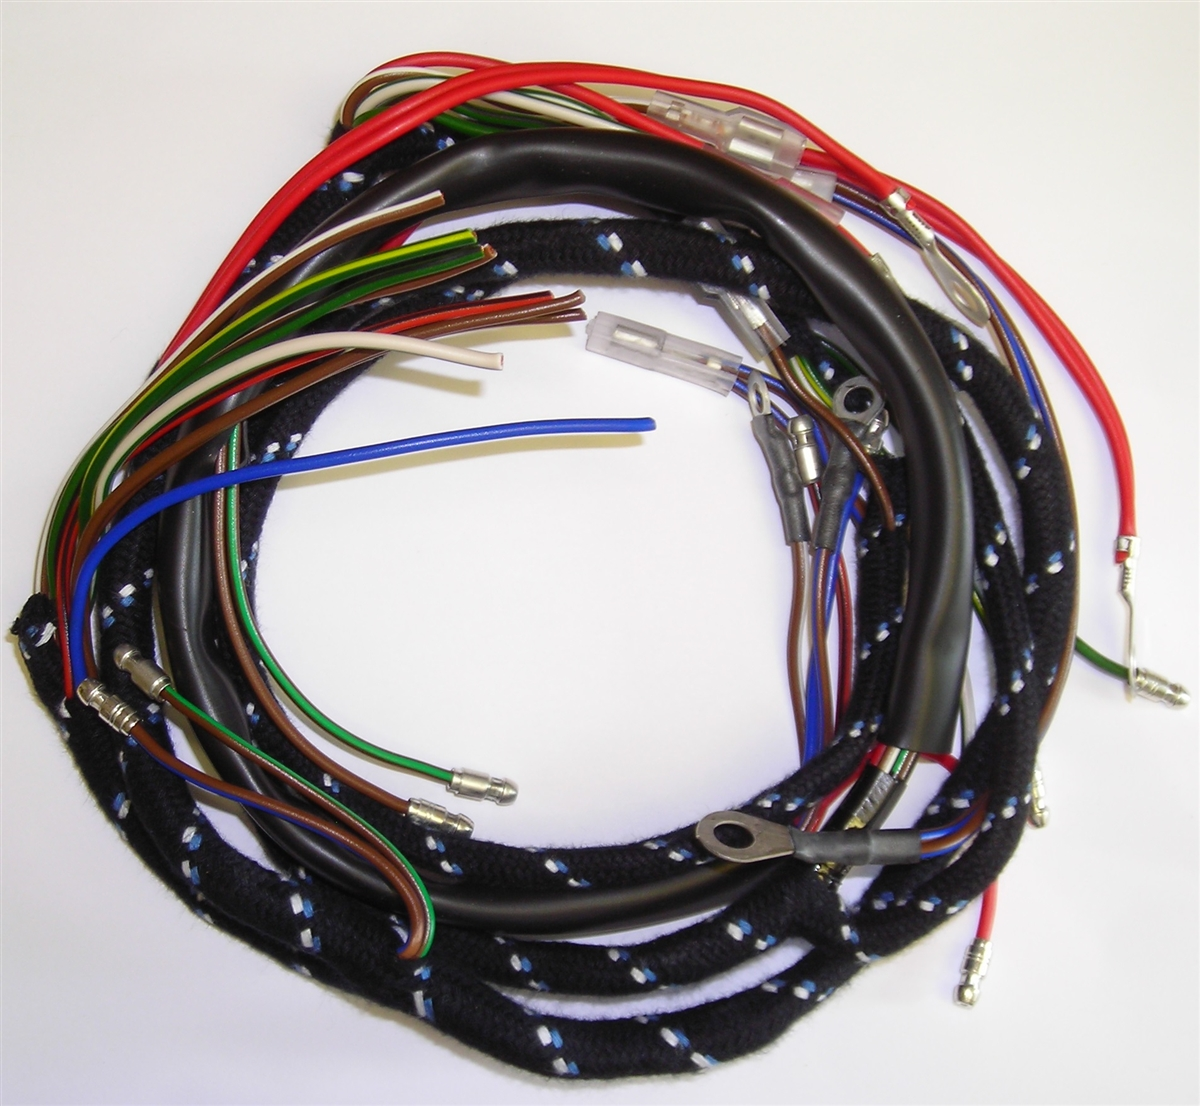 MC111PB 2?1374670568 matchless g80cs motorcycle wiring harness aj wiring harness mazda at bayanpartner.co